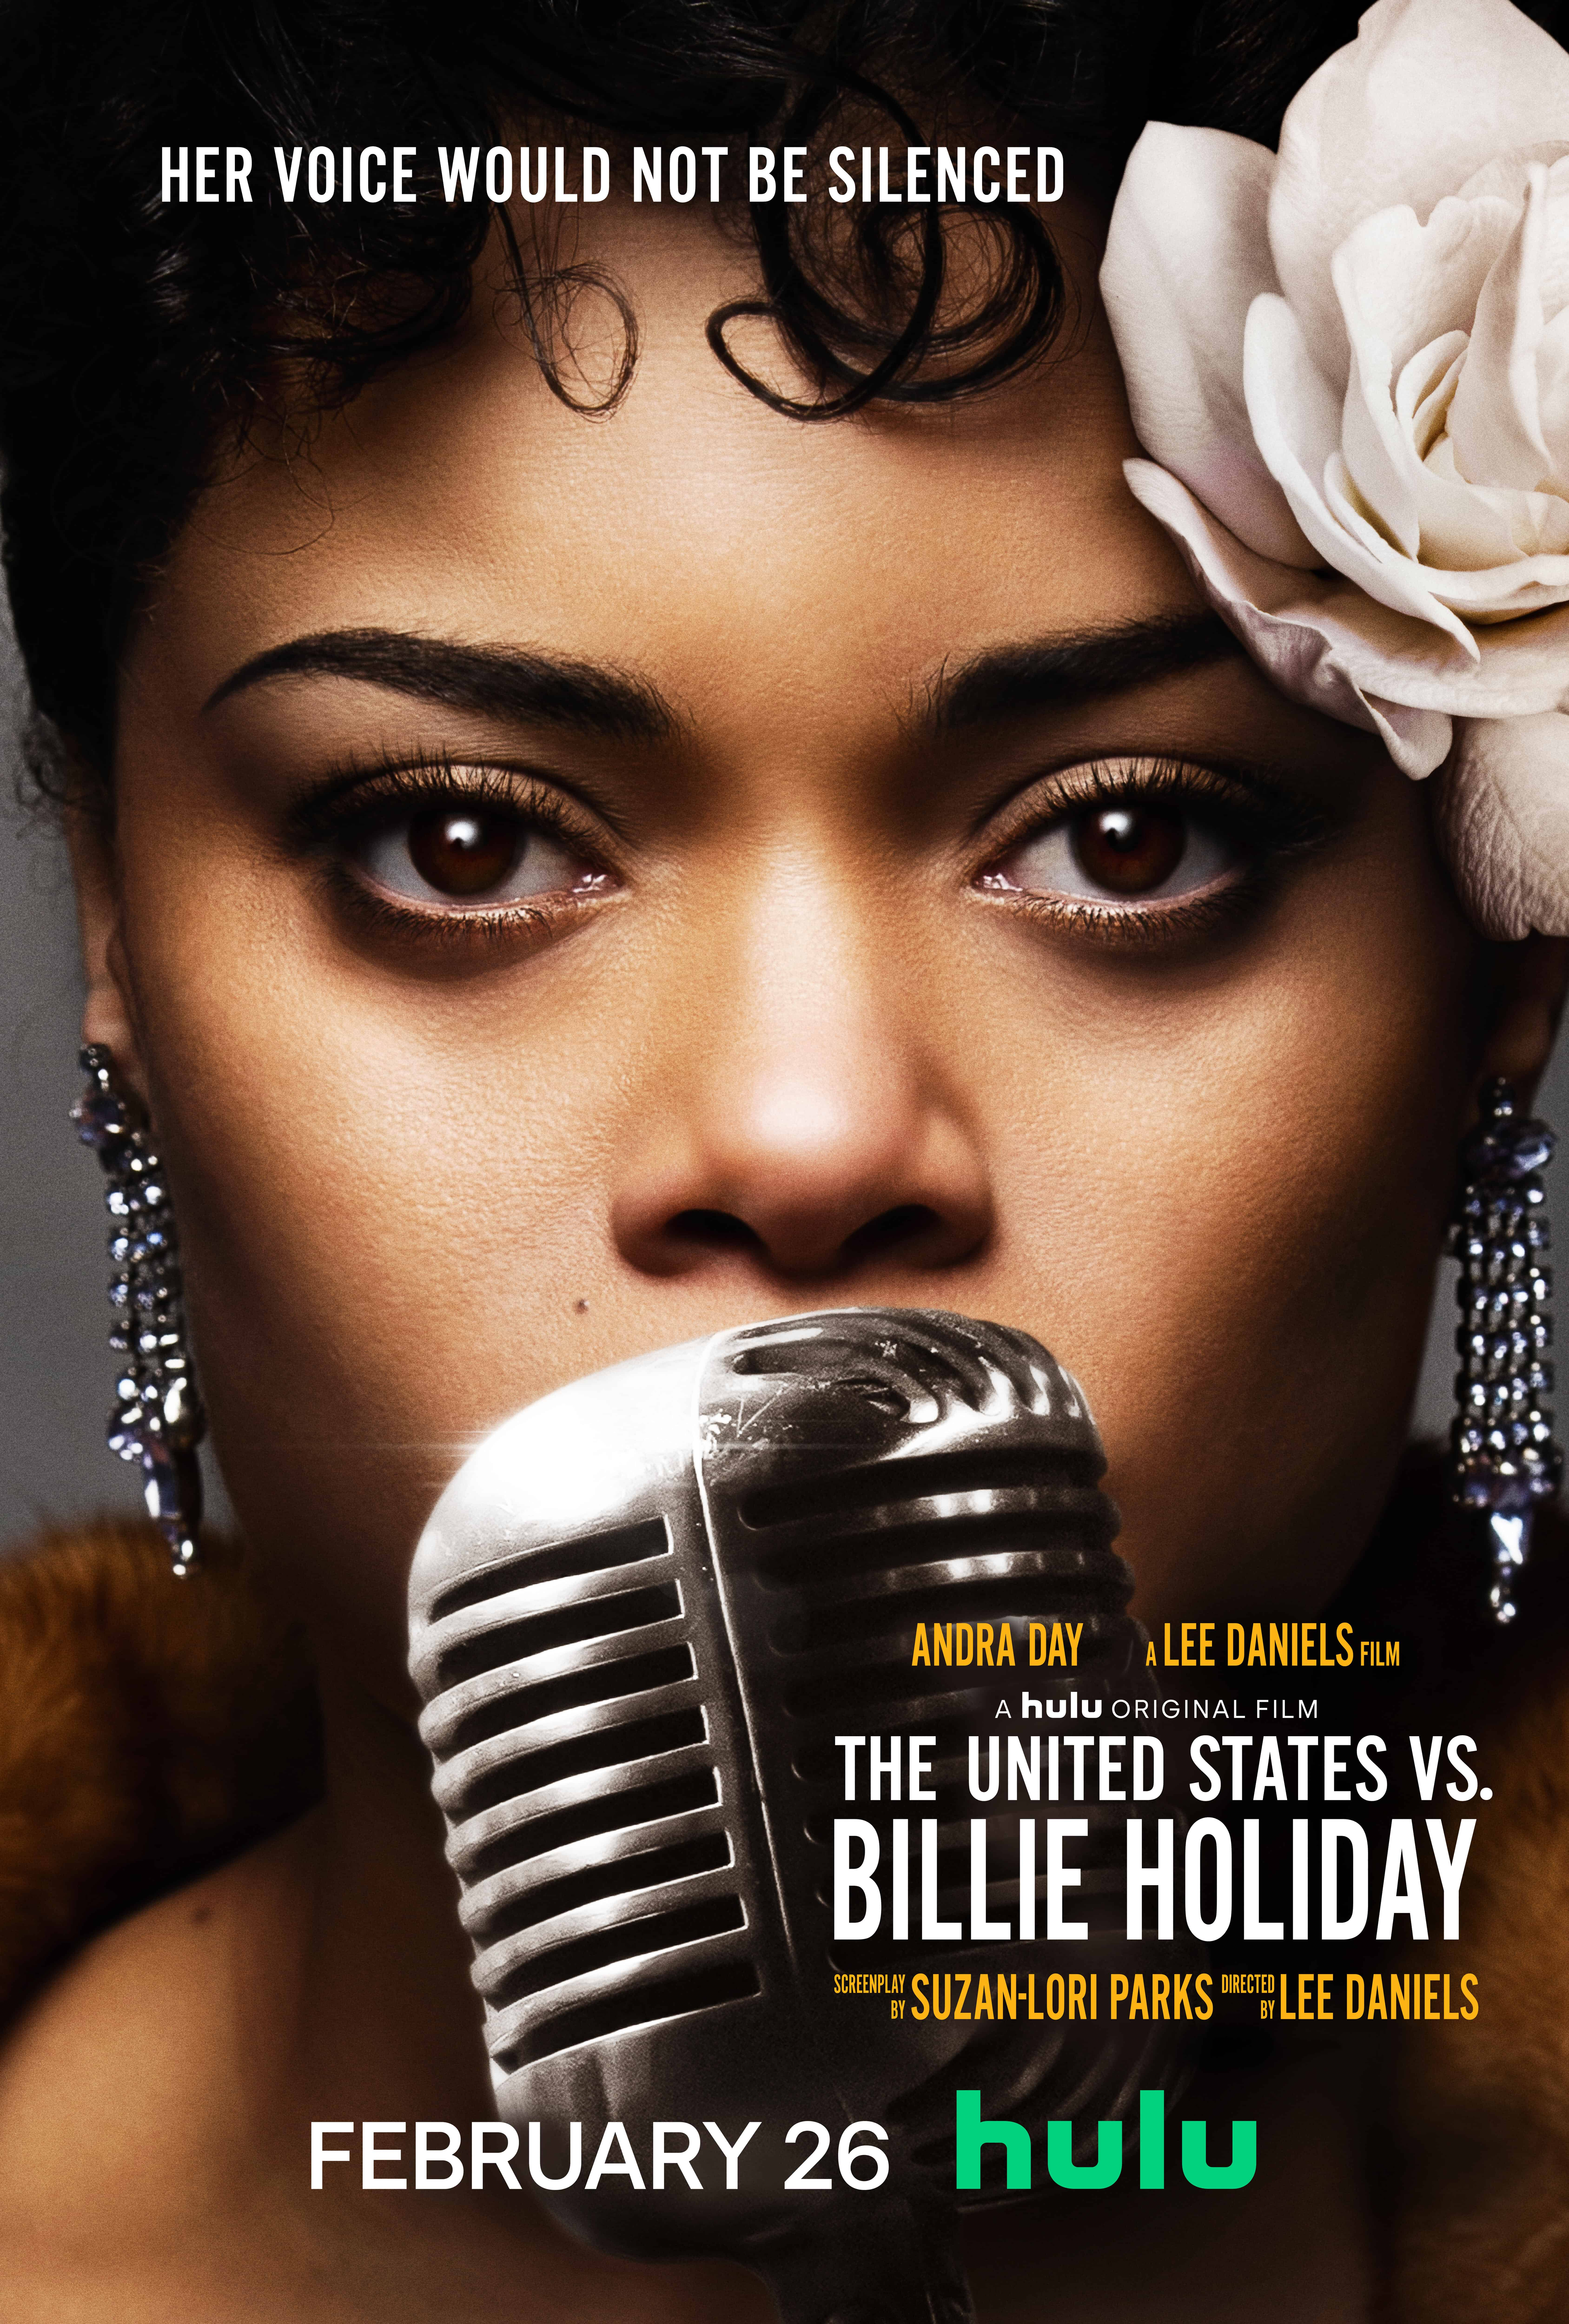 The US vs Billie Holiday hulu movie poster Oscars movies for grownups